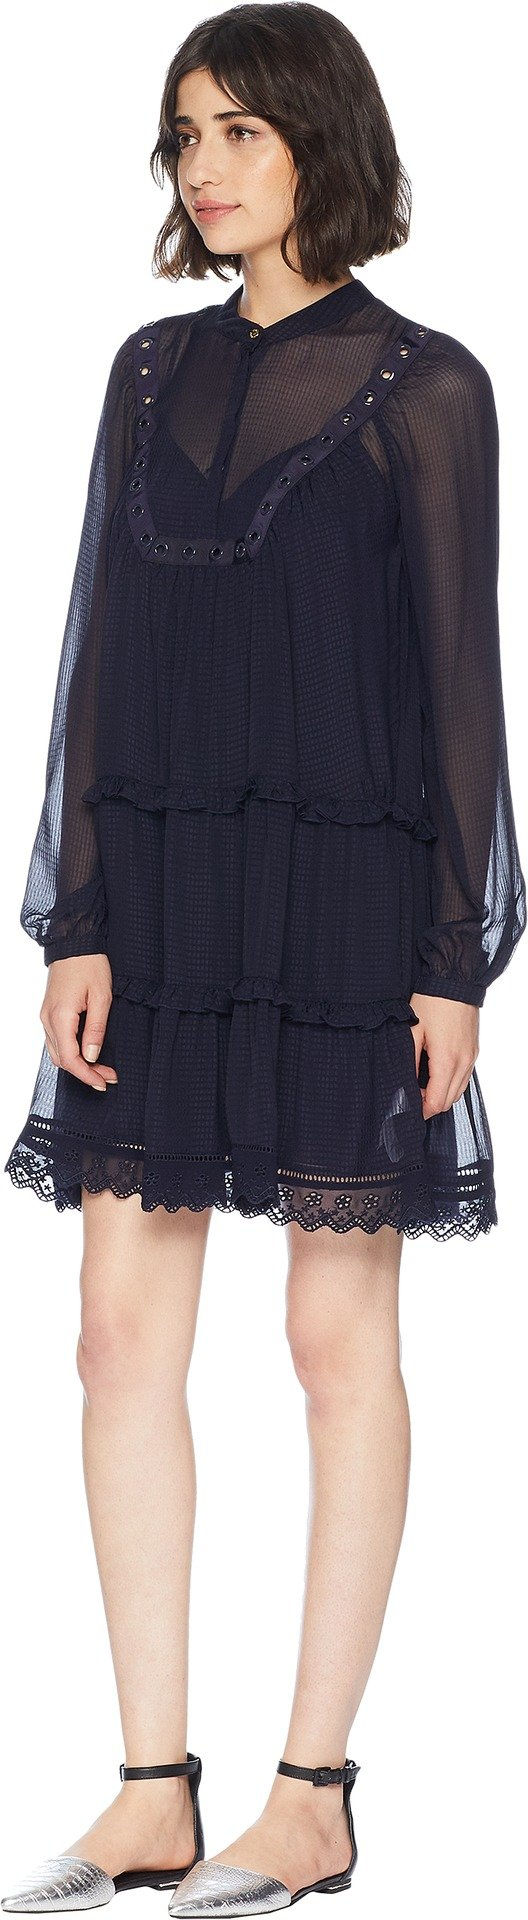 Juicy Couture Women's Seersucker Embroidered Trim Dress Zenith Petite/X-Small by Juicy Couture (Image #2)